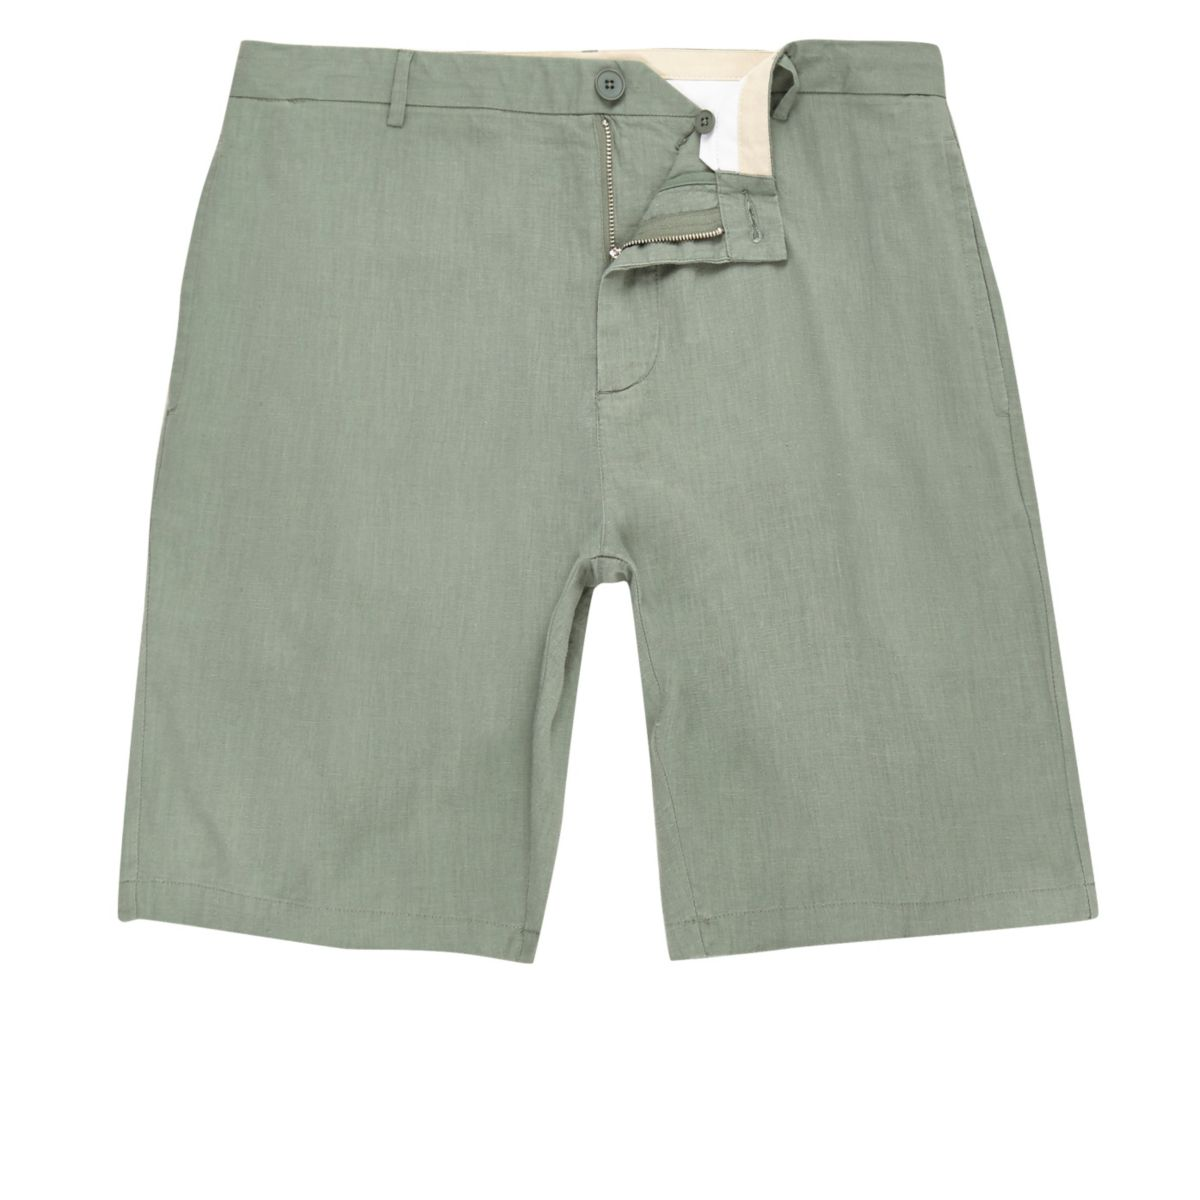 Green linen slim fit chino shorts